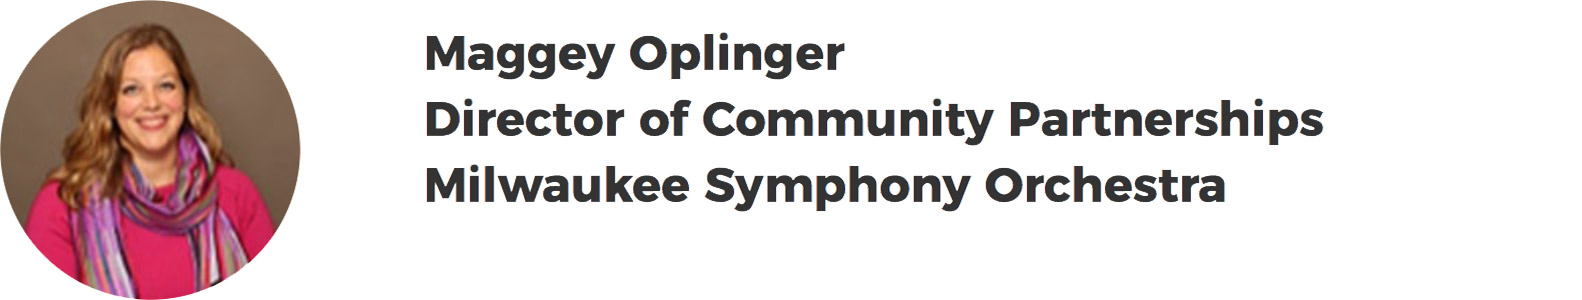 Maggey Oplinger – Director of Community Partnerships – Milwaukee Symphony Orchestra, Warner Grand Theater into the MSO's performance hall